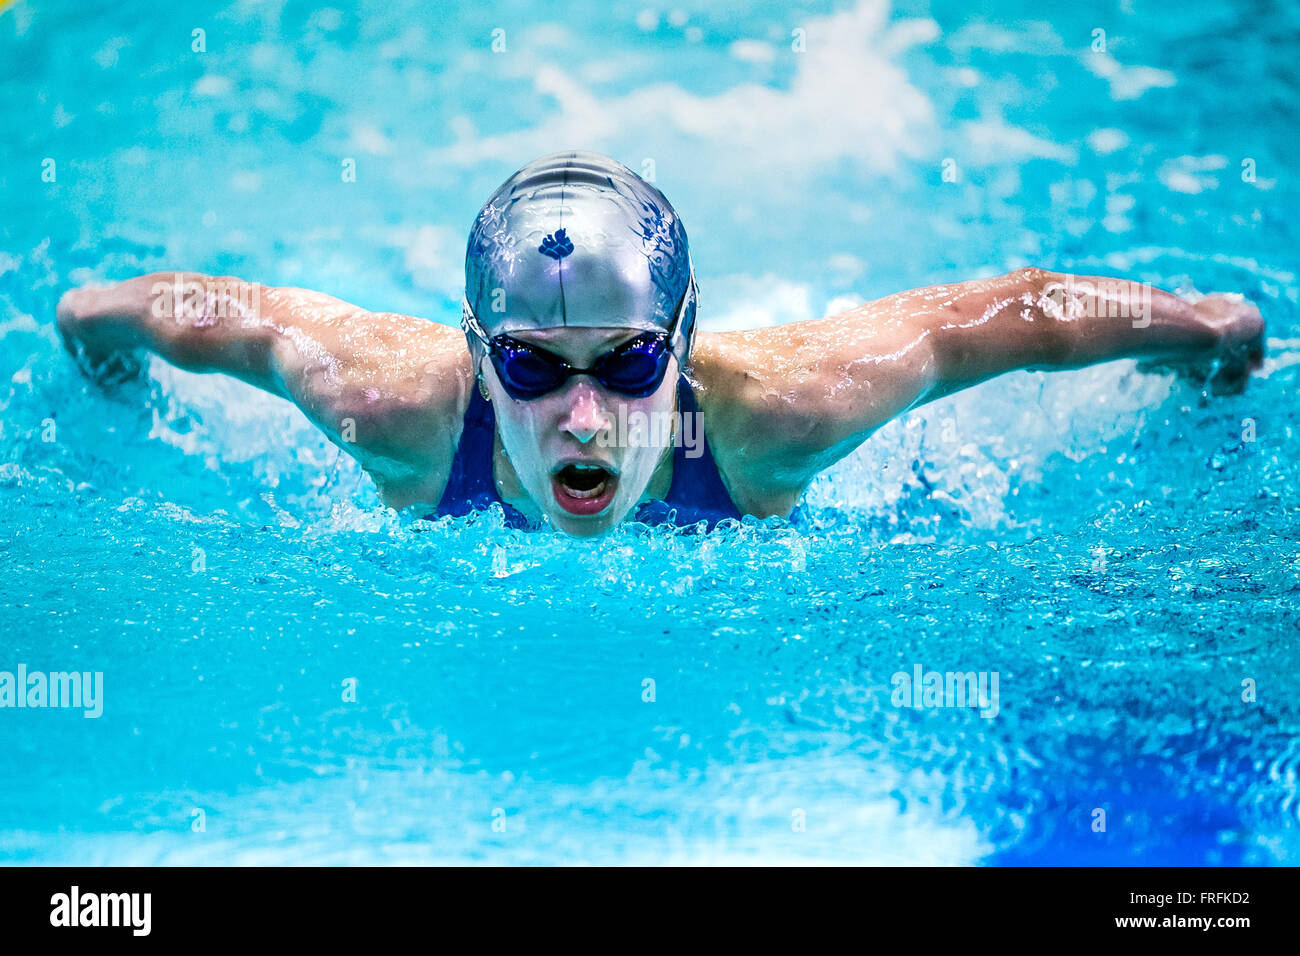 À une distance nageur fille papillon au tournoi international de natation piscine Photo Stock